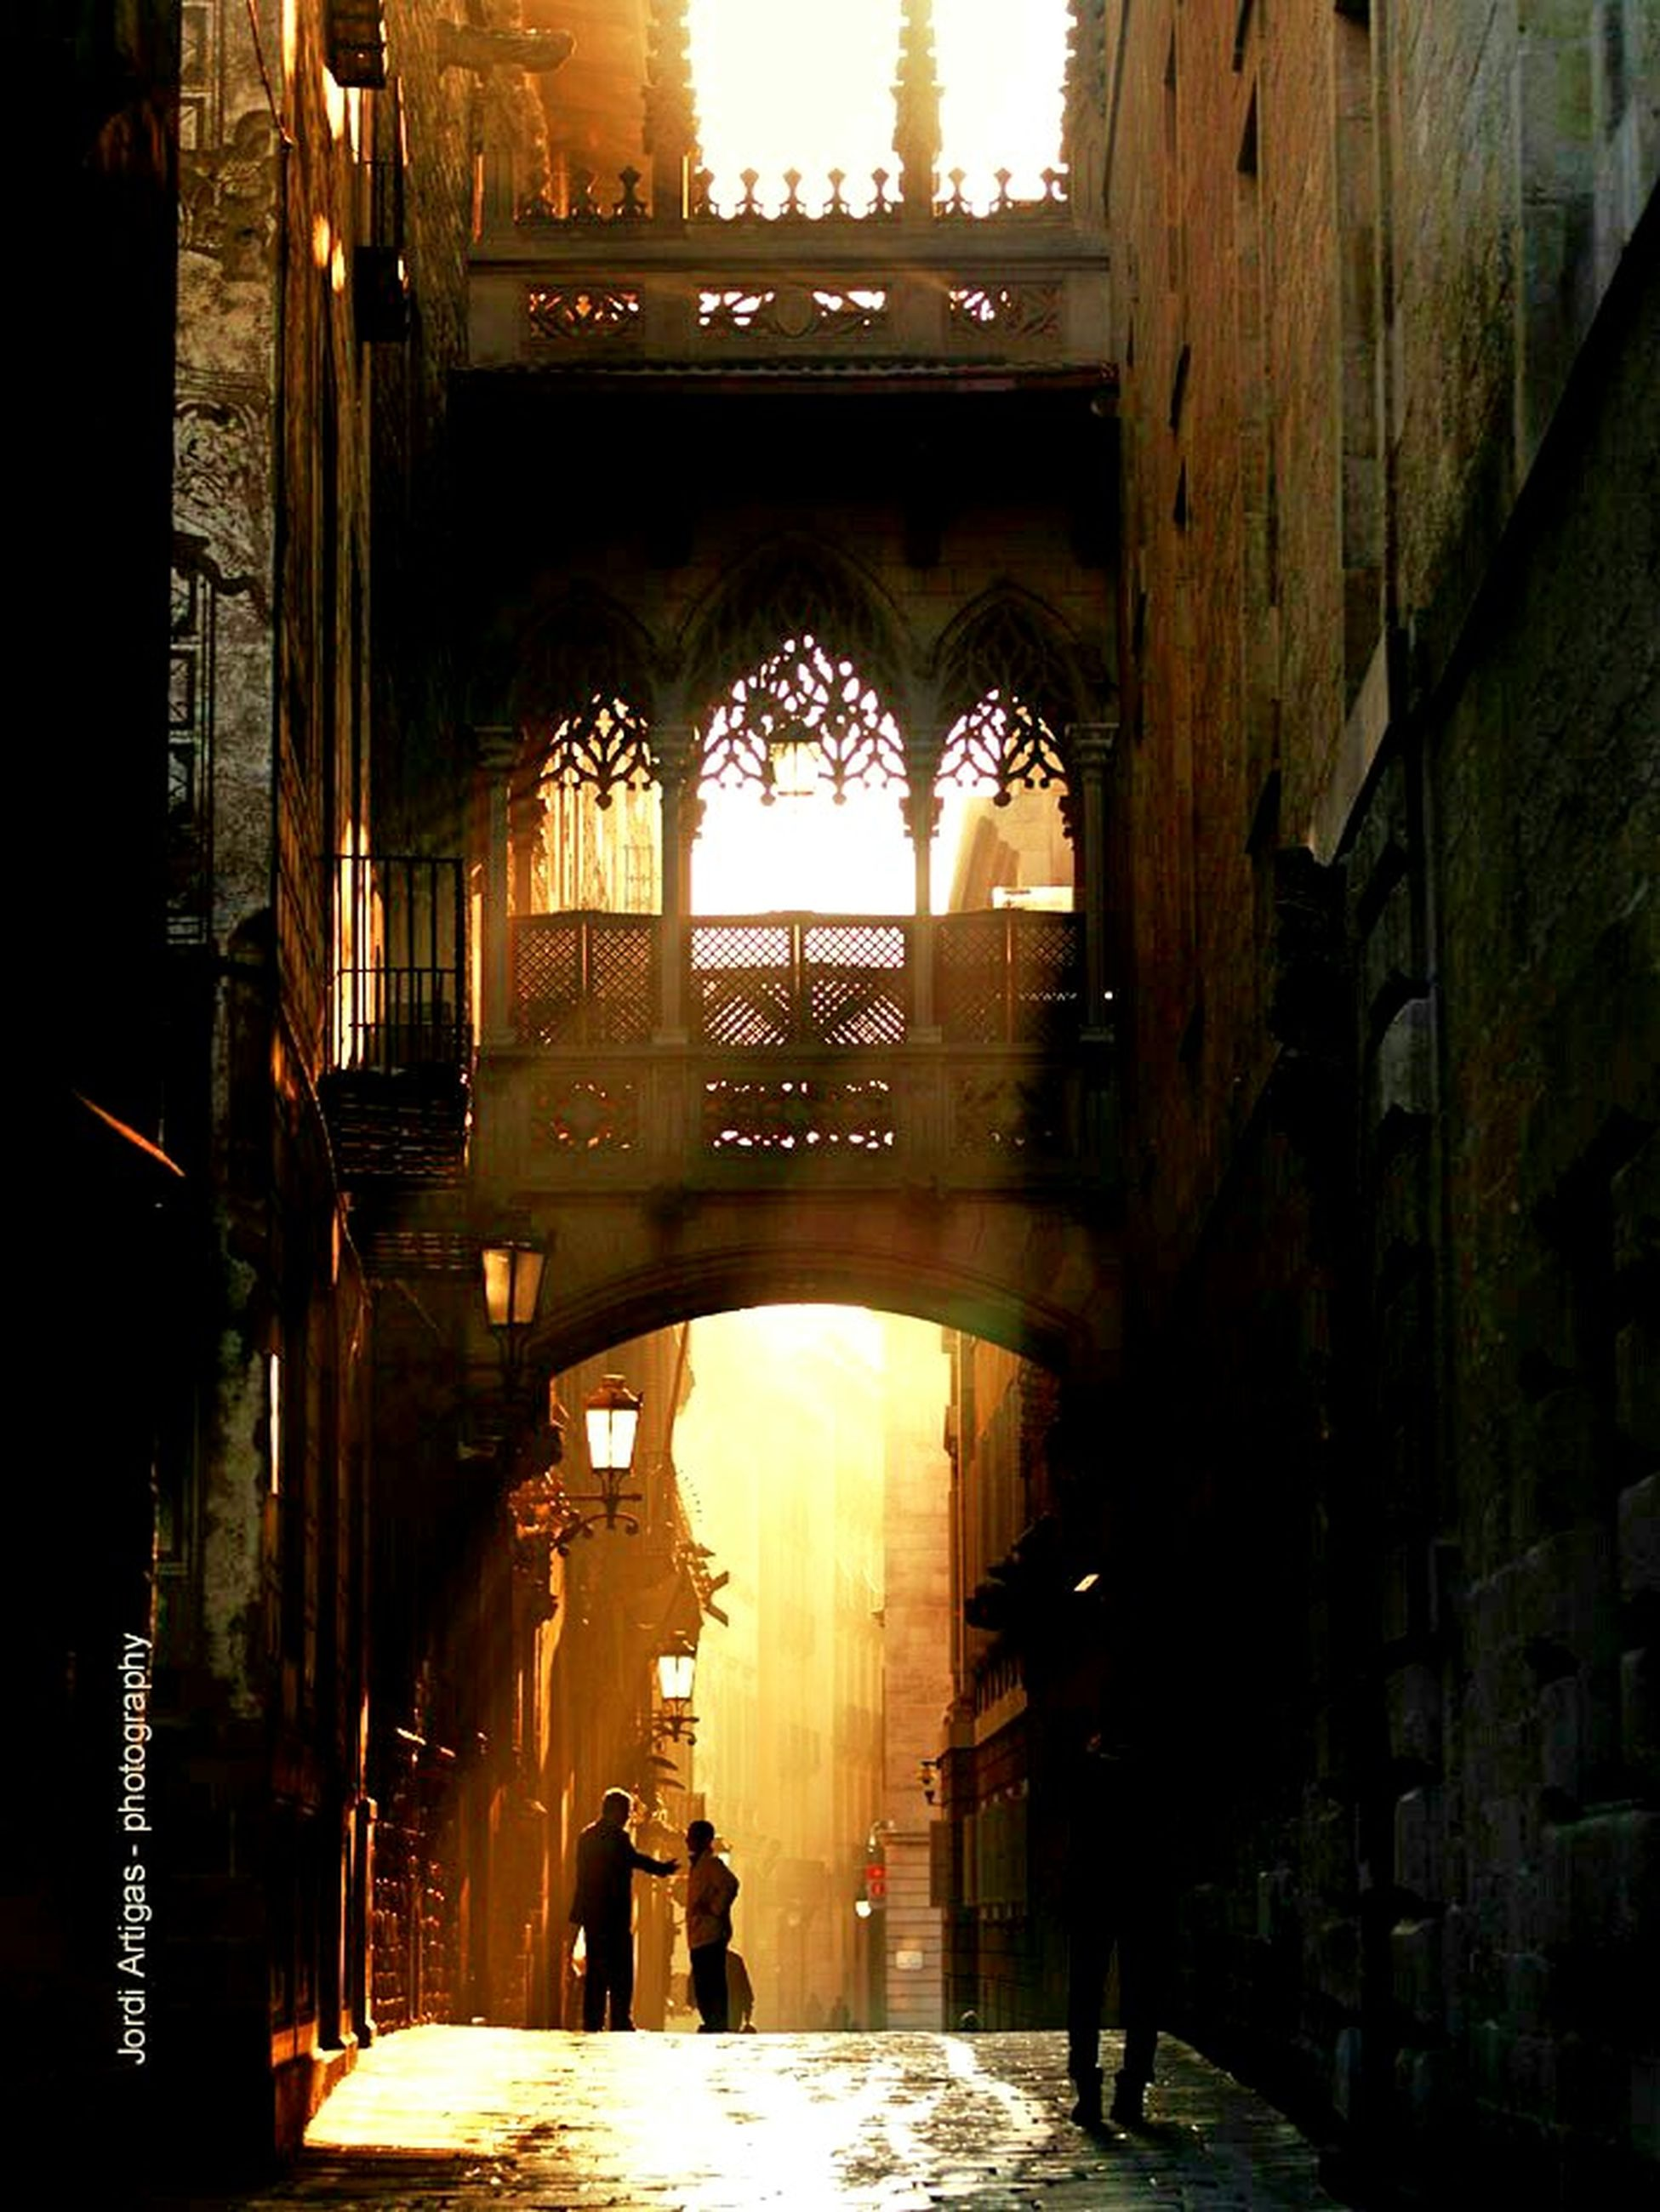 architecture, built structure, arch, building exterior, bridge - man made structure, indoors, archway, connection, architectural column, history, water, men, travel destinations, incidental people, illuminated, arch bridge, walking, city, building